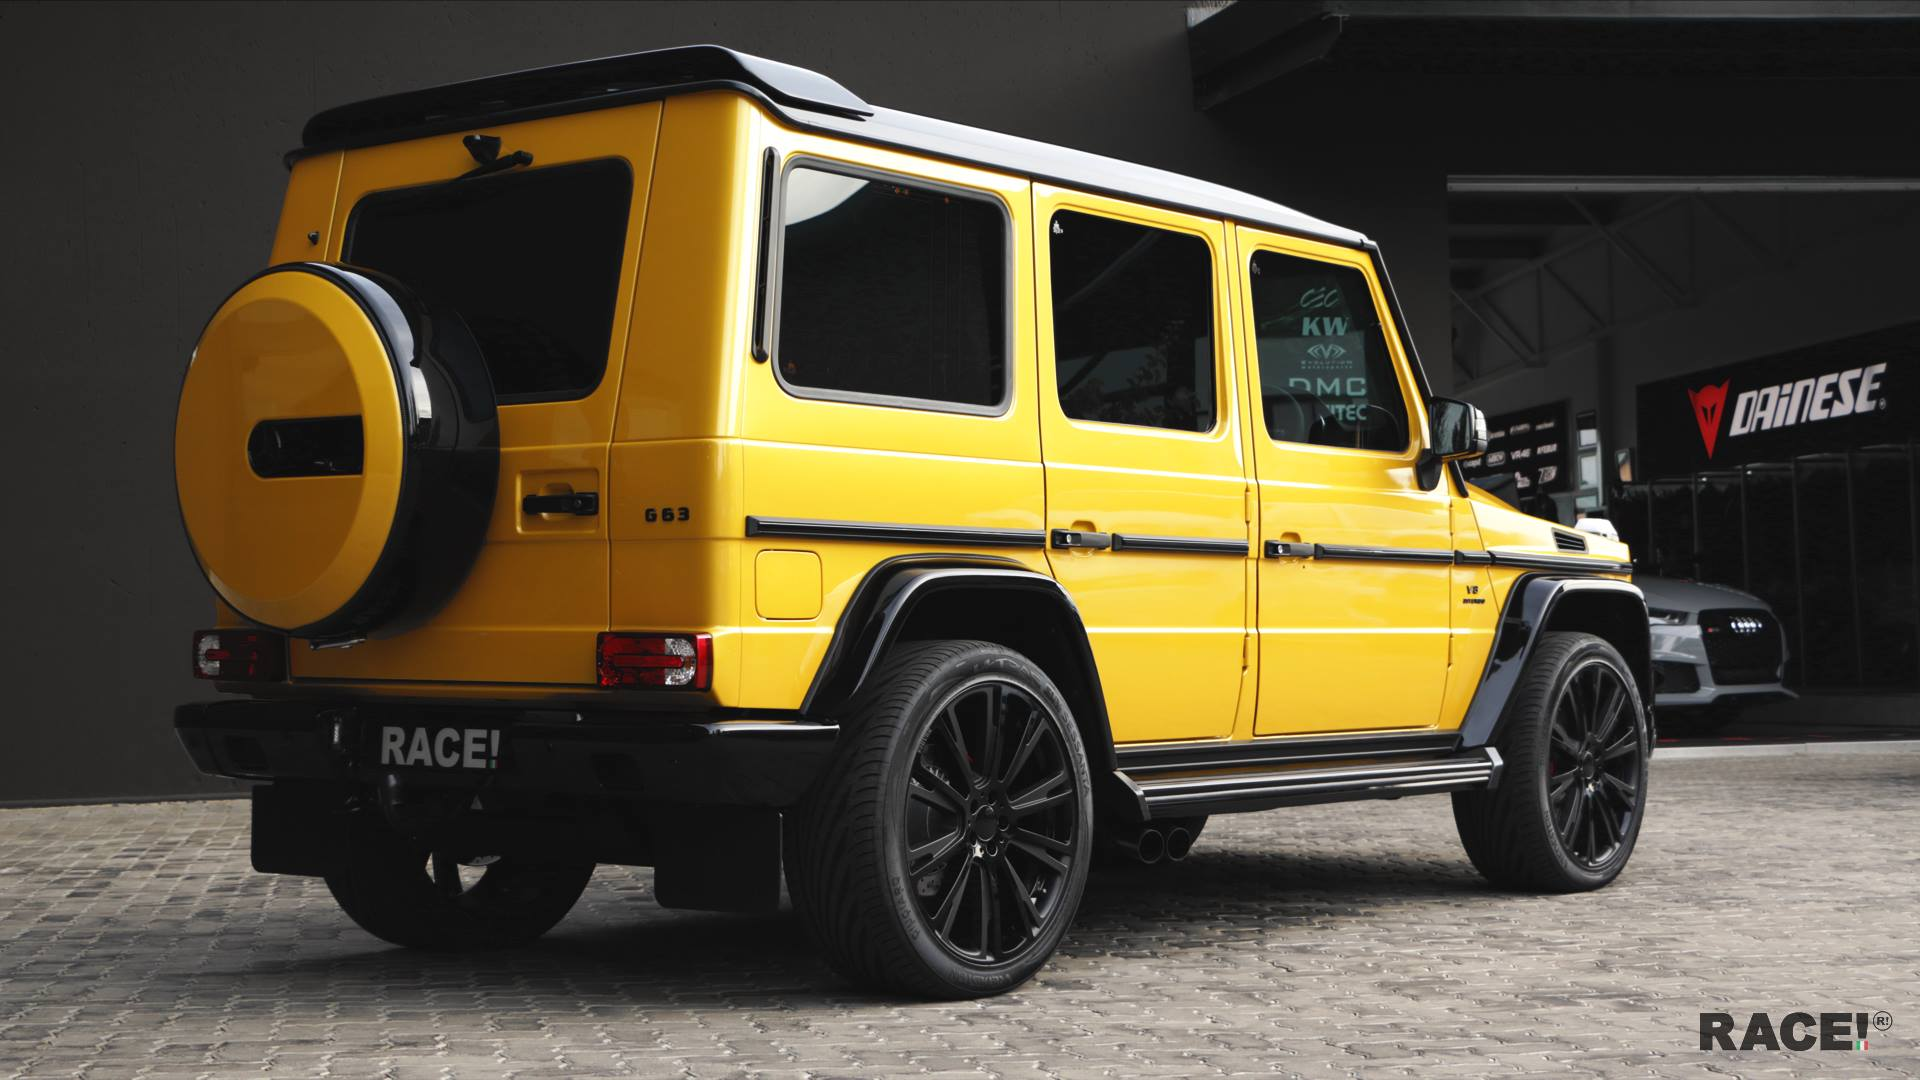 Crazy Color Yellow G63 Amg With Brabus Parts By Race Autoevolution